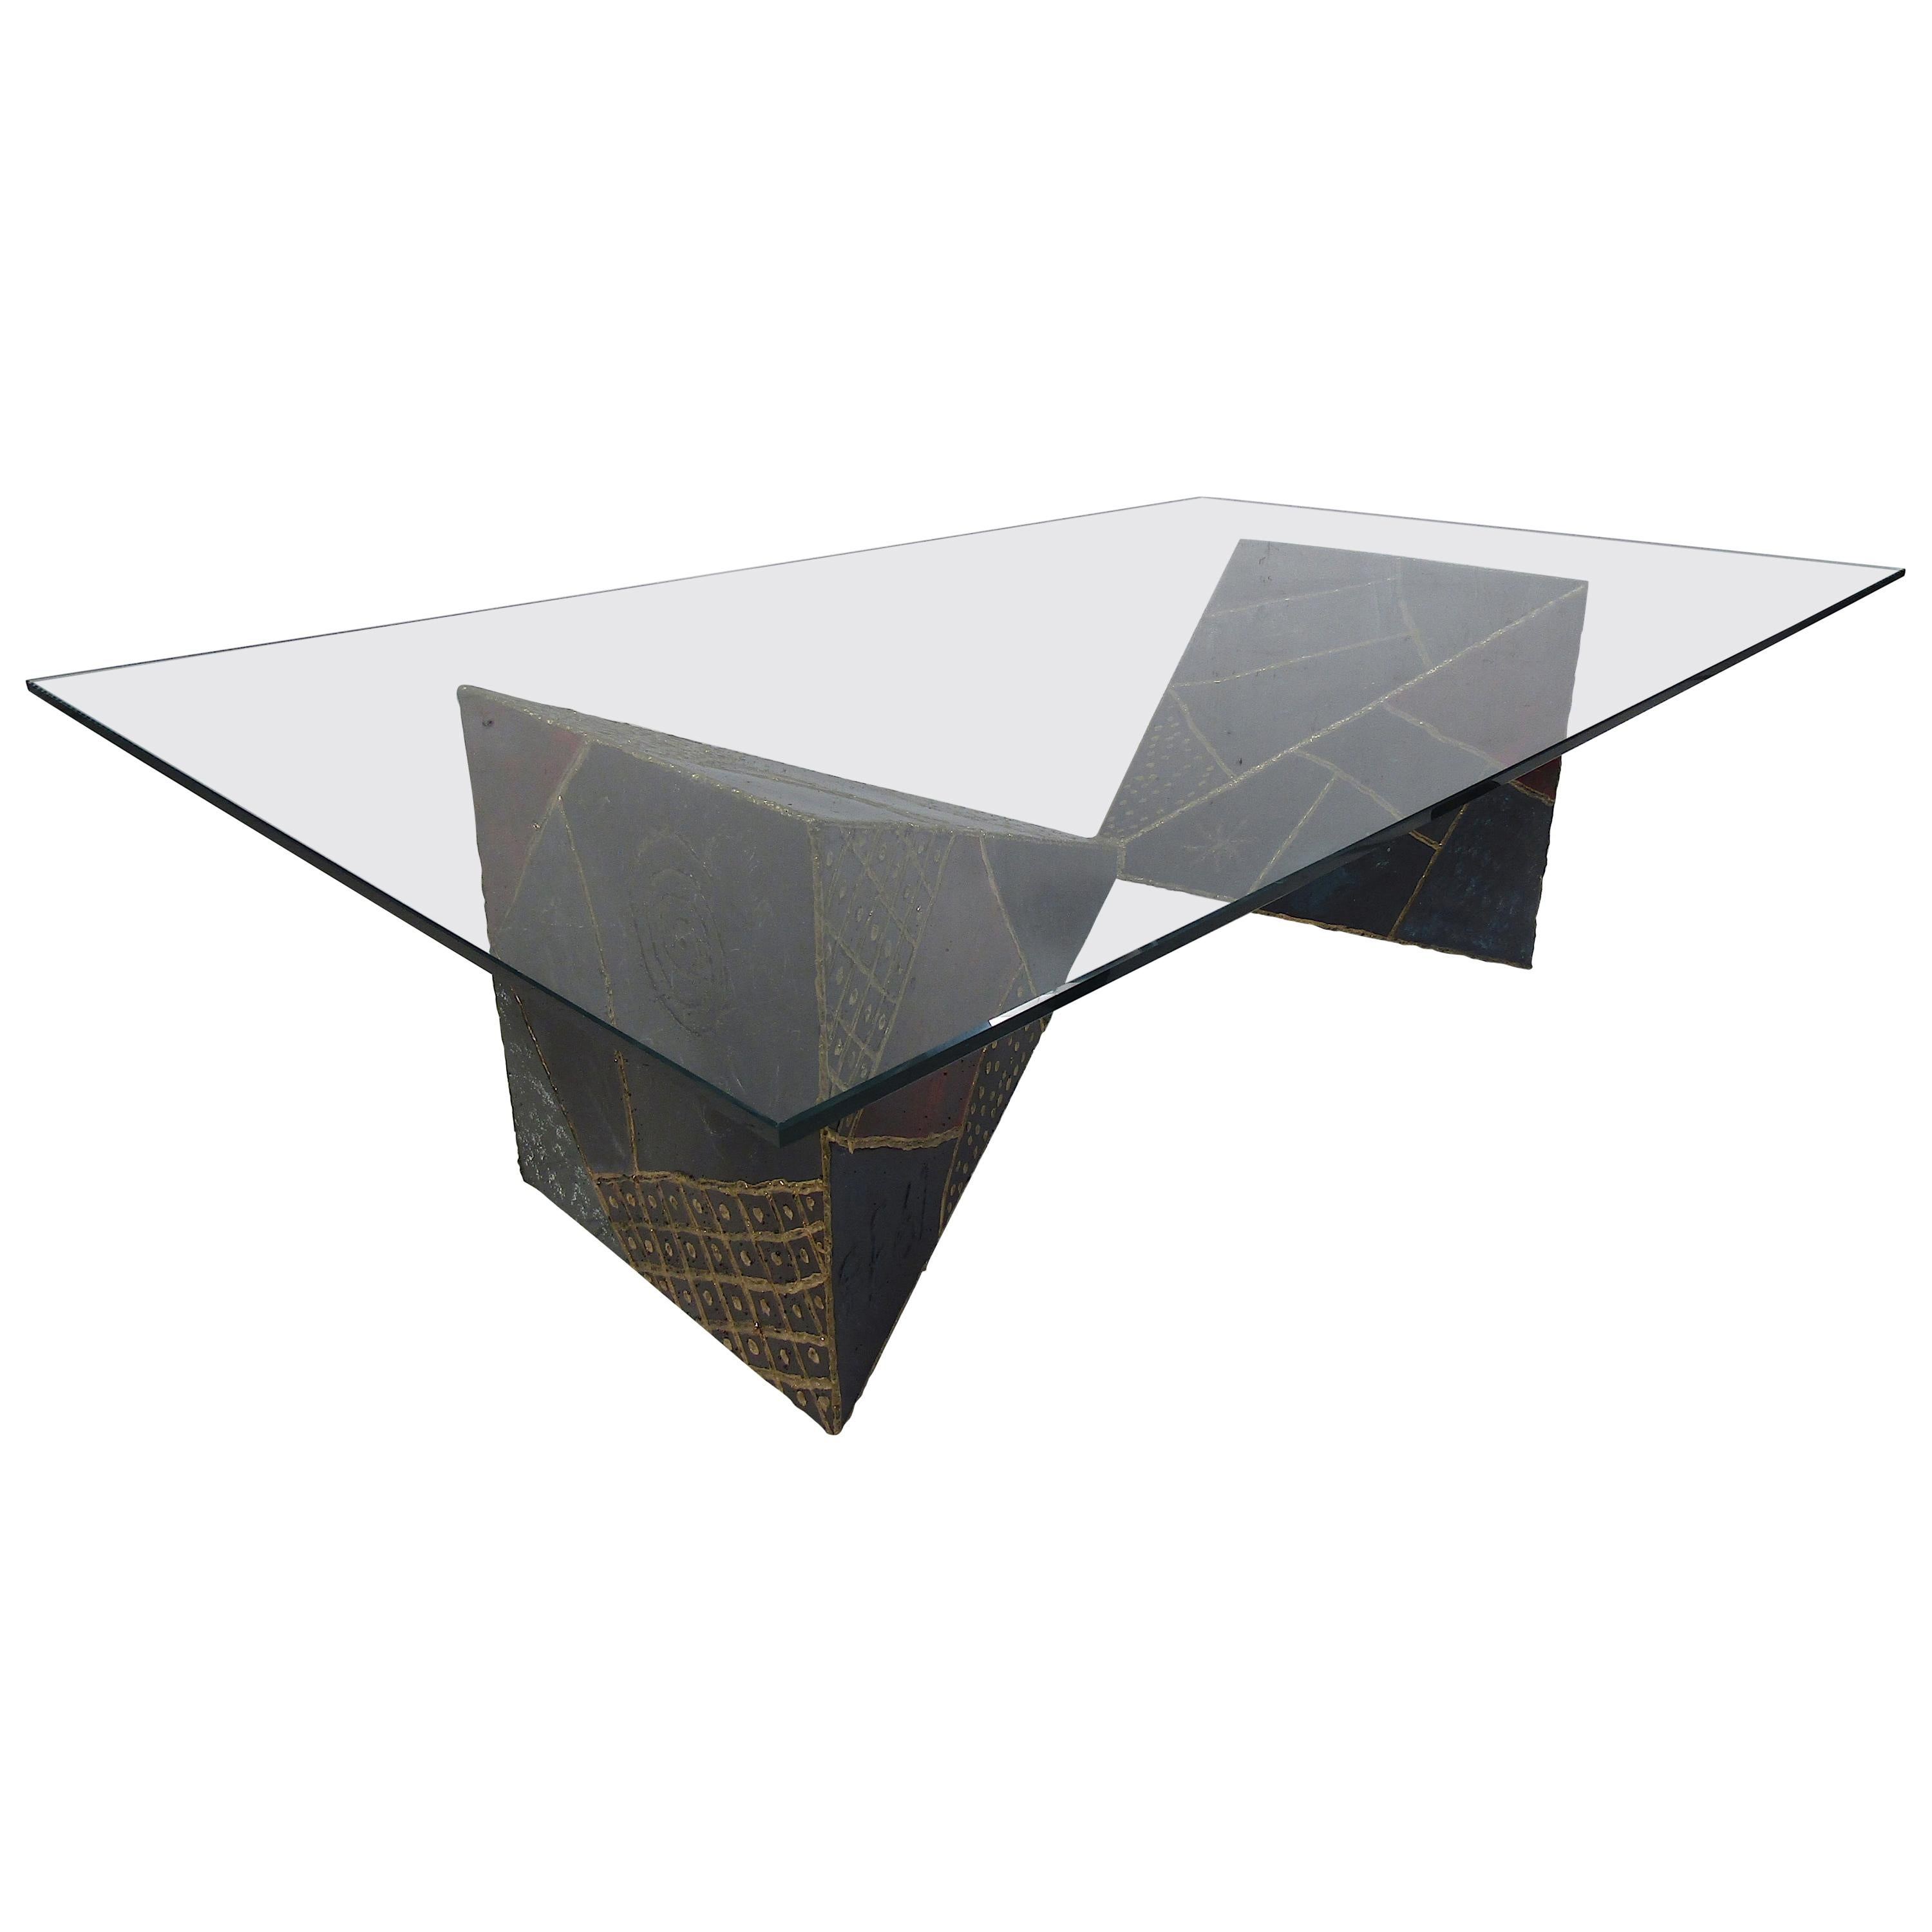 Iconic Midcentury Paul Evans PE 61 Brutalist Coffee Table for Directional